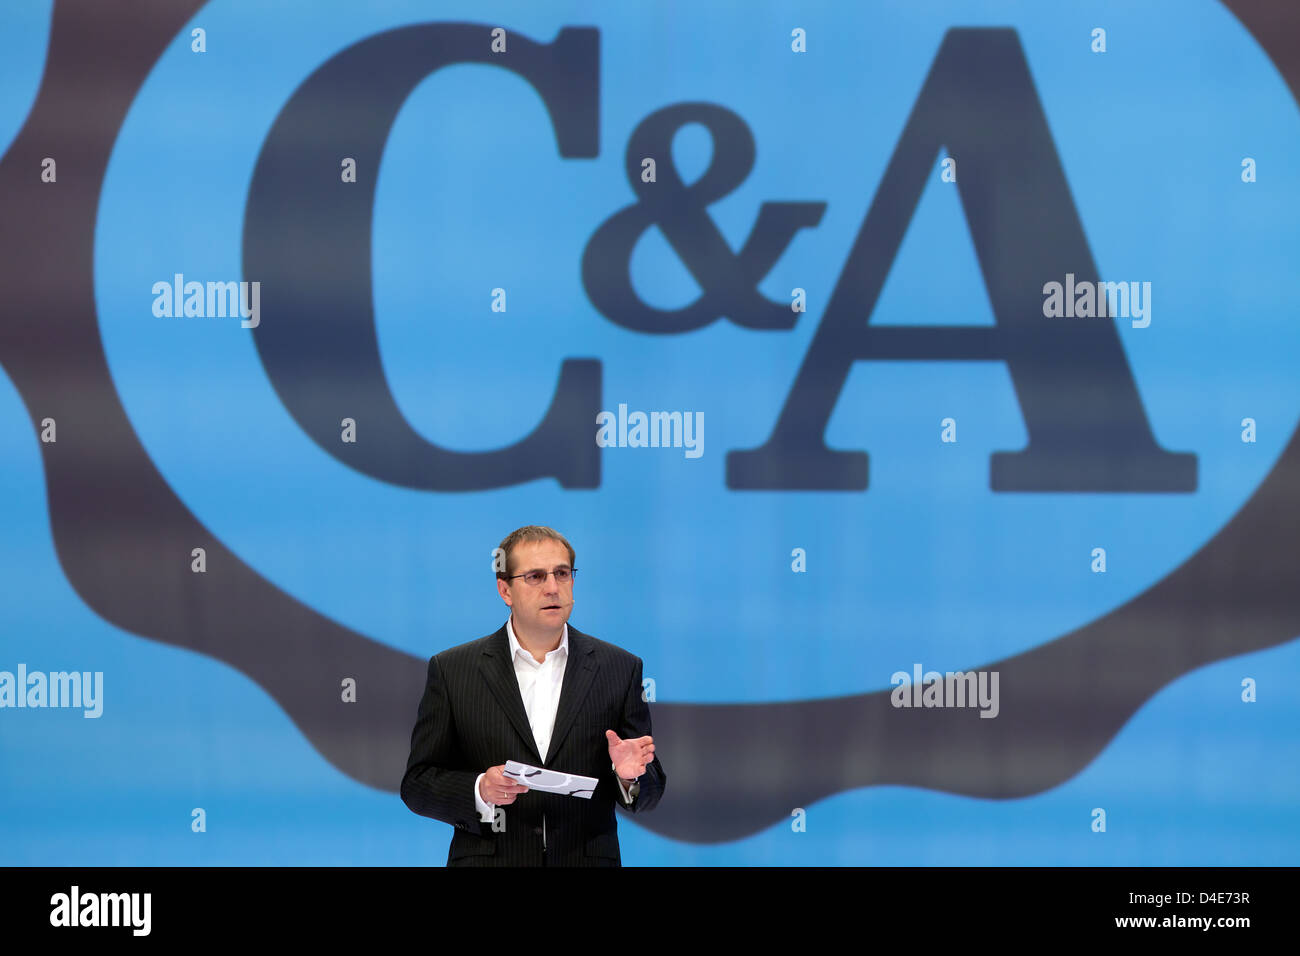 Duesseldorf, Germany, Andreas G. Seitz, spokesman for the european C & A Executive Board - Stock Image